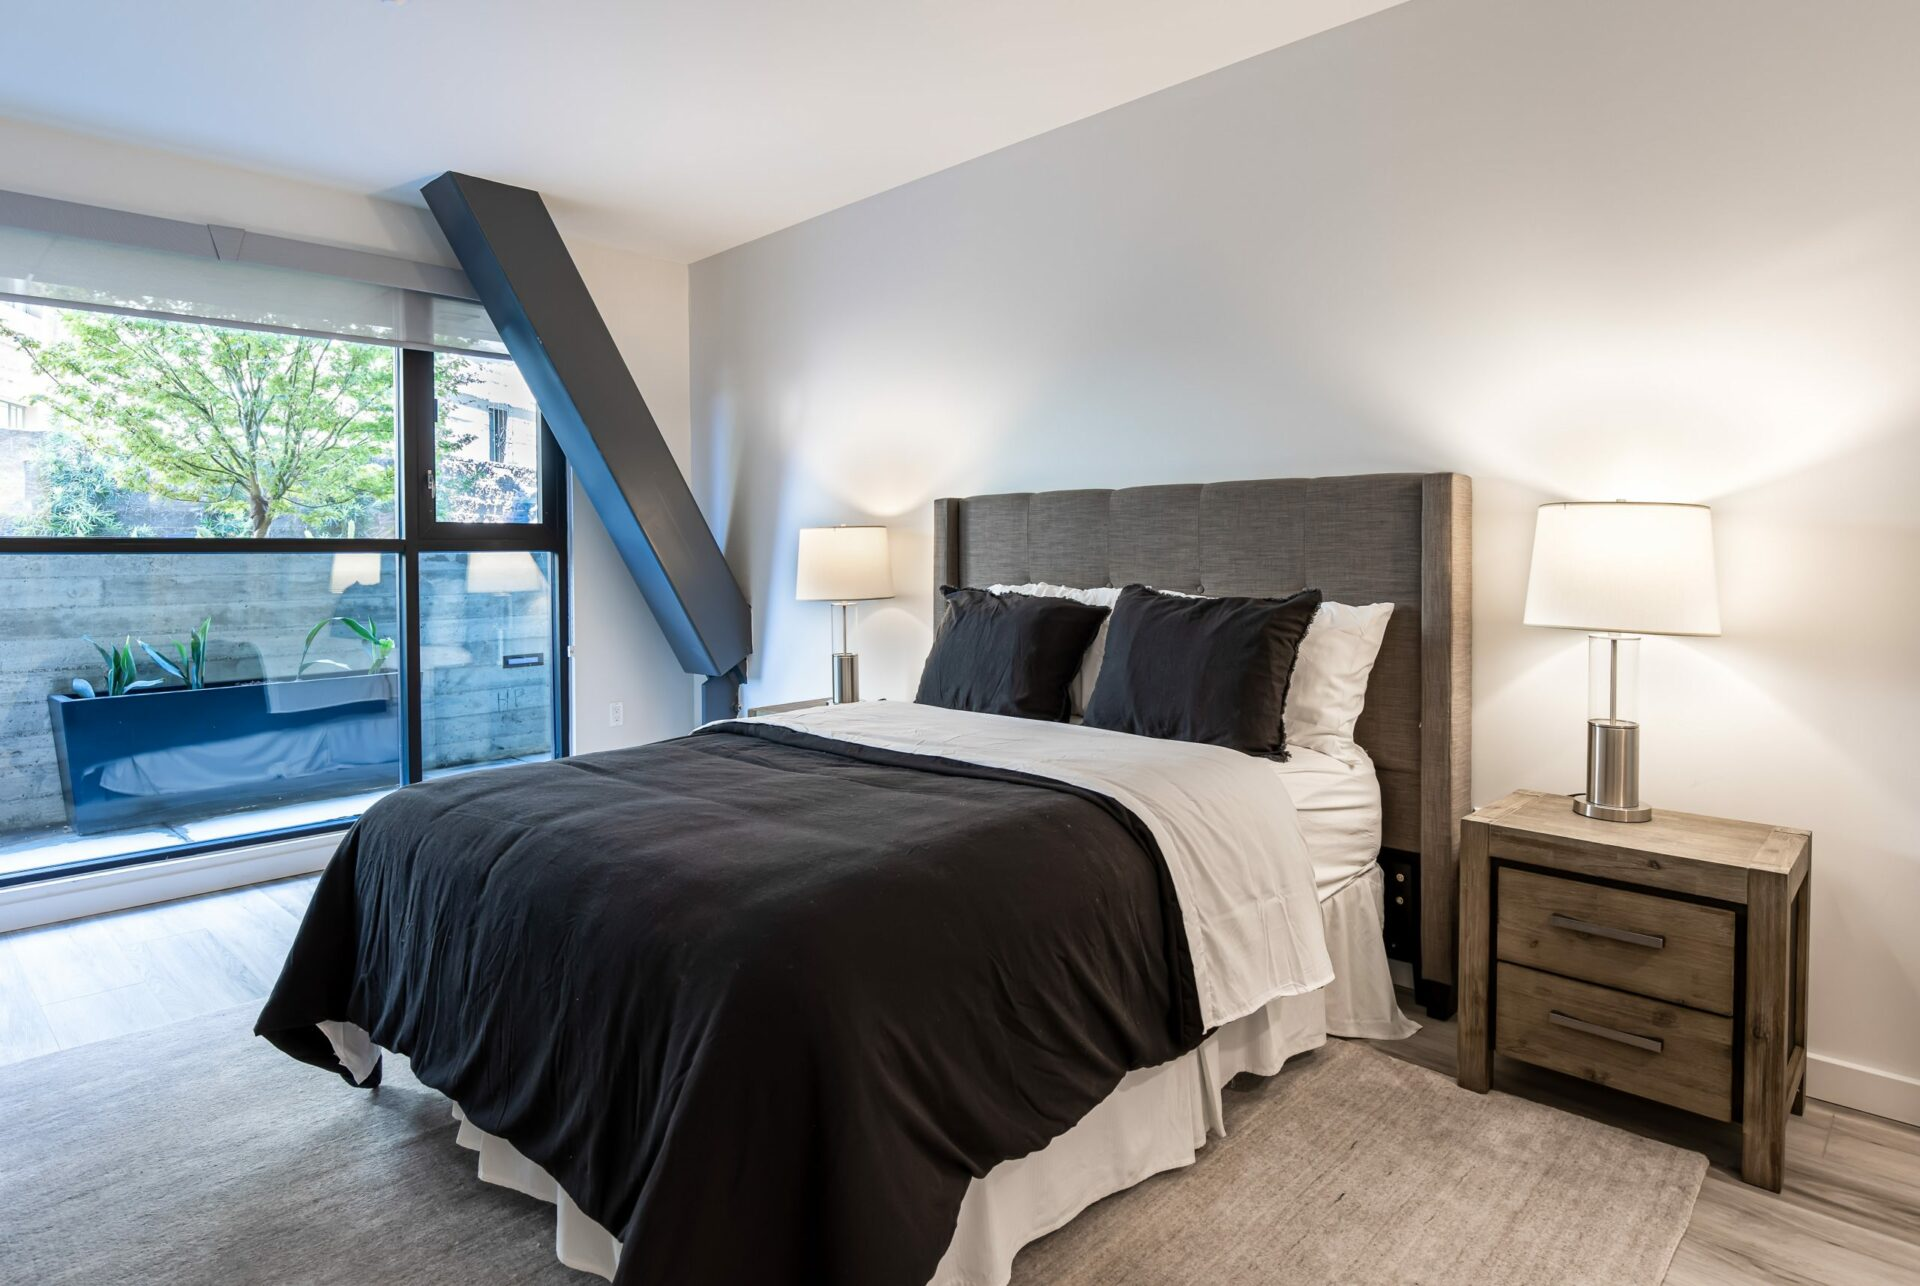 2 Bed Townhome Bedroom